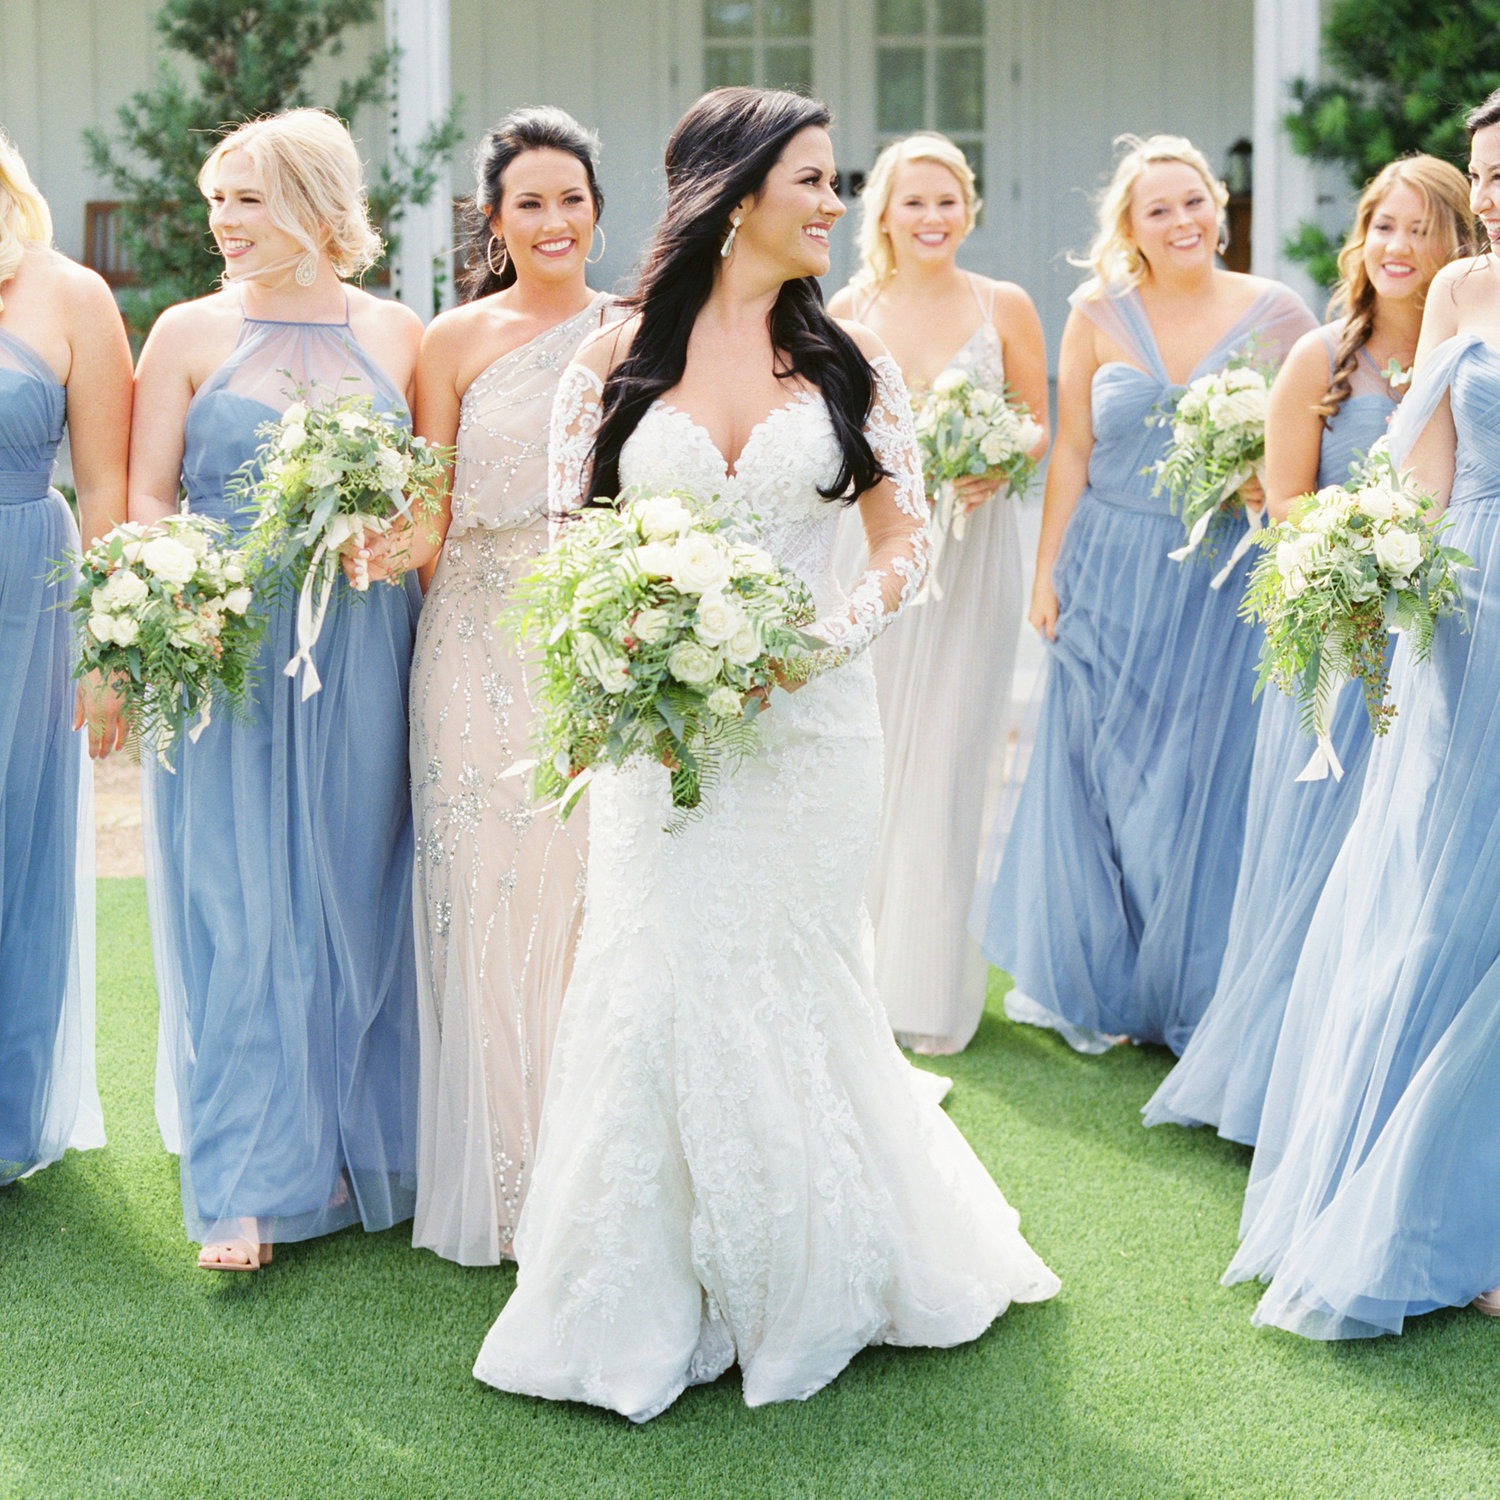 38d4904fd8a7 Bridesmaid Dresses - To Match, or Not to Match? — Jessica Gold Photography